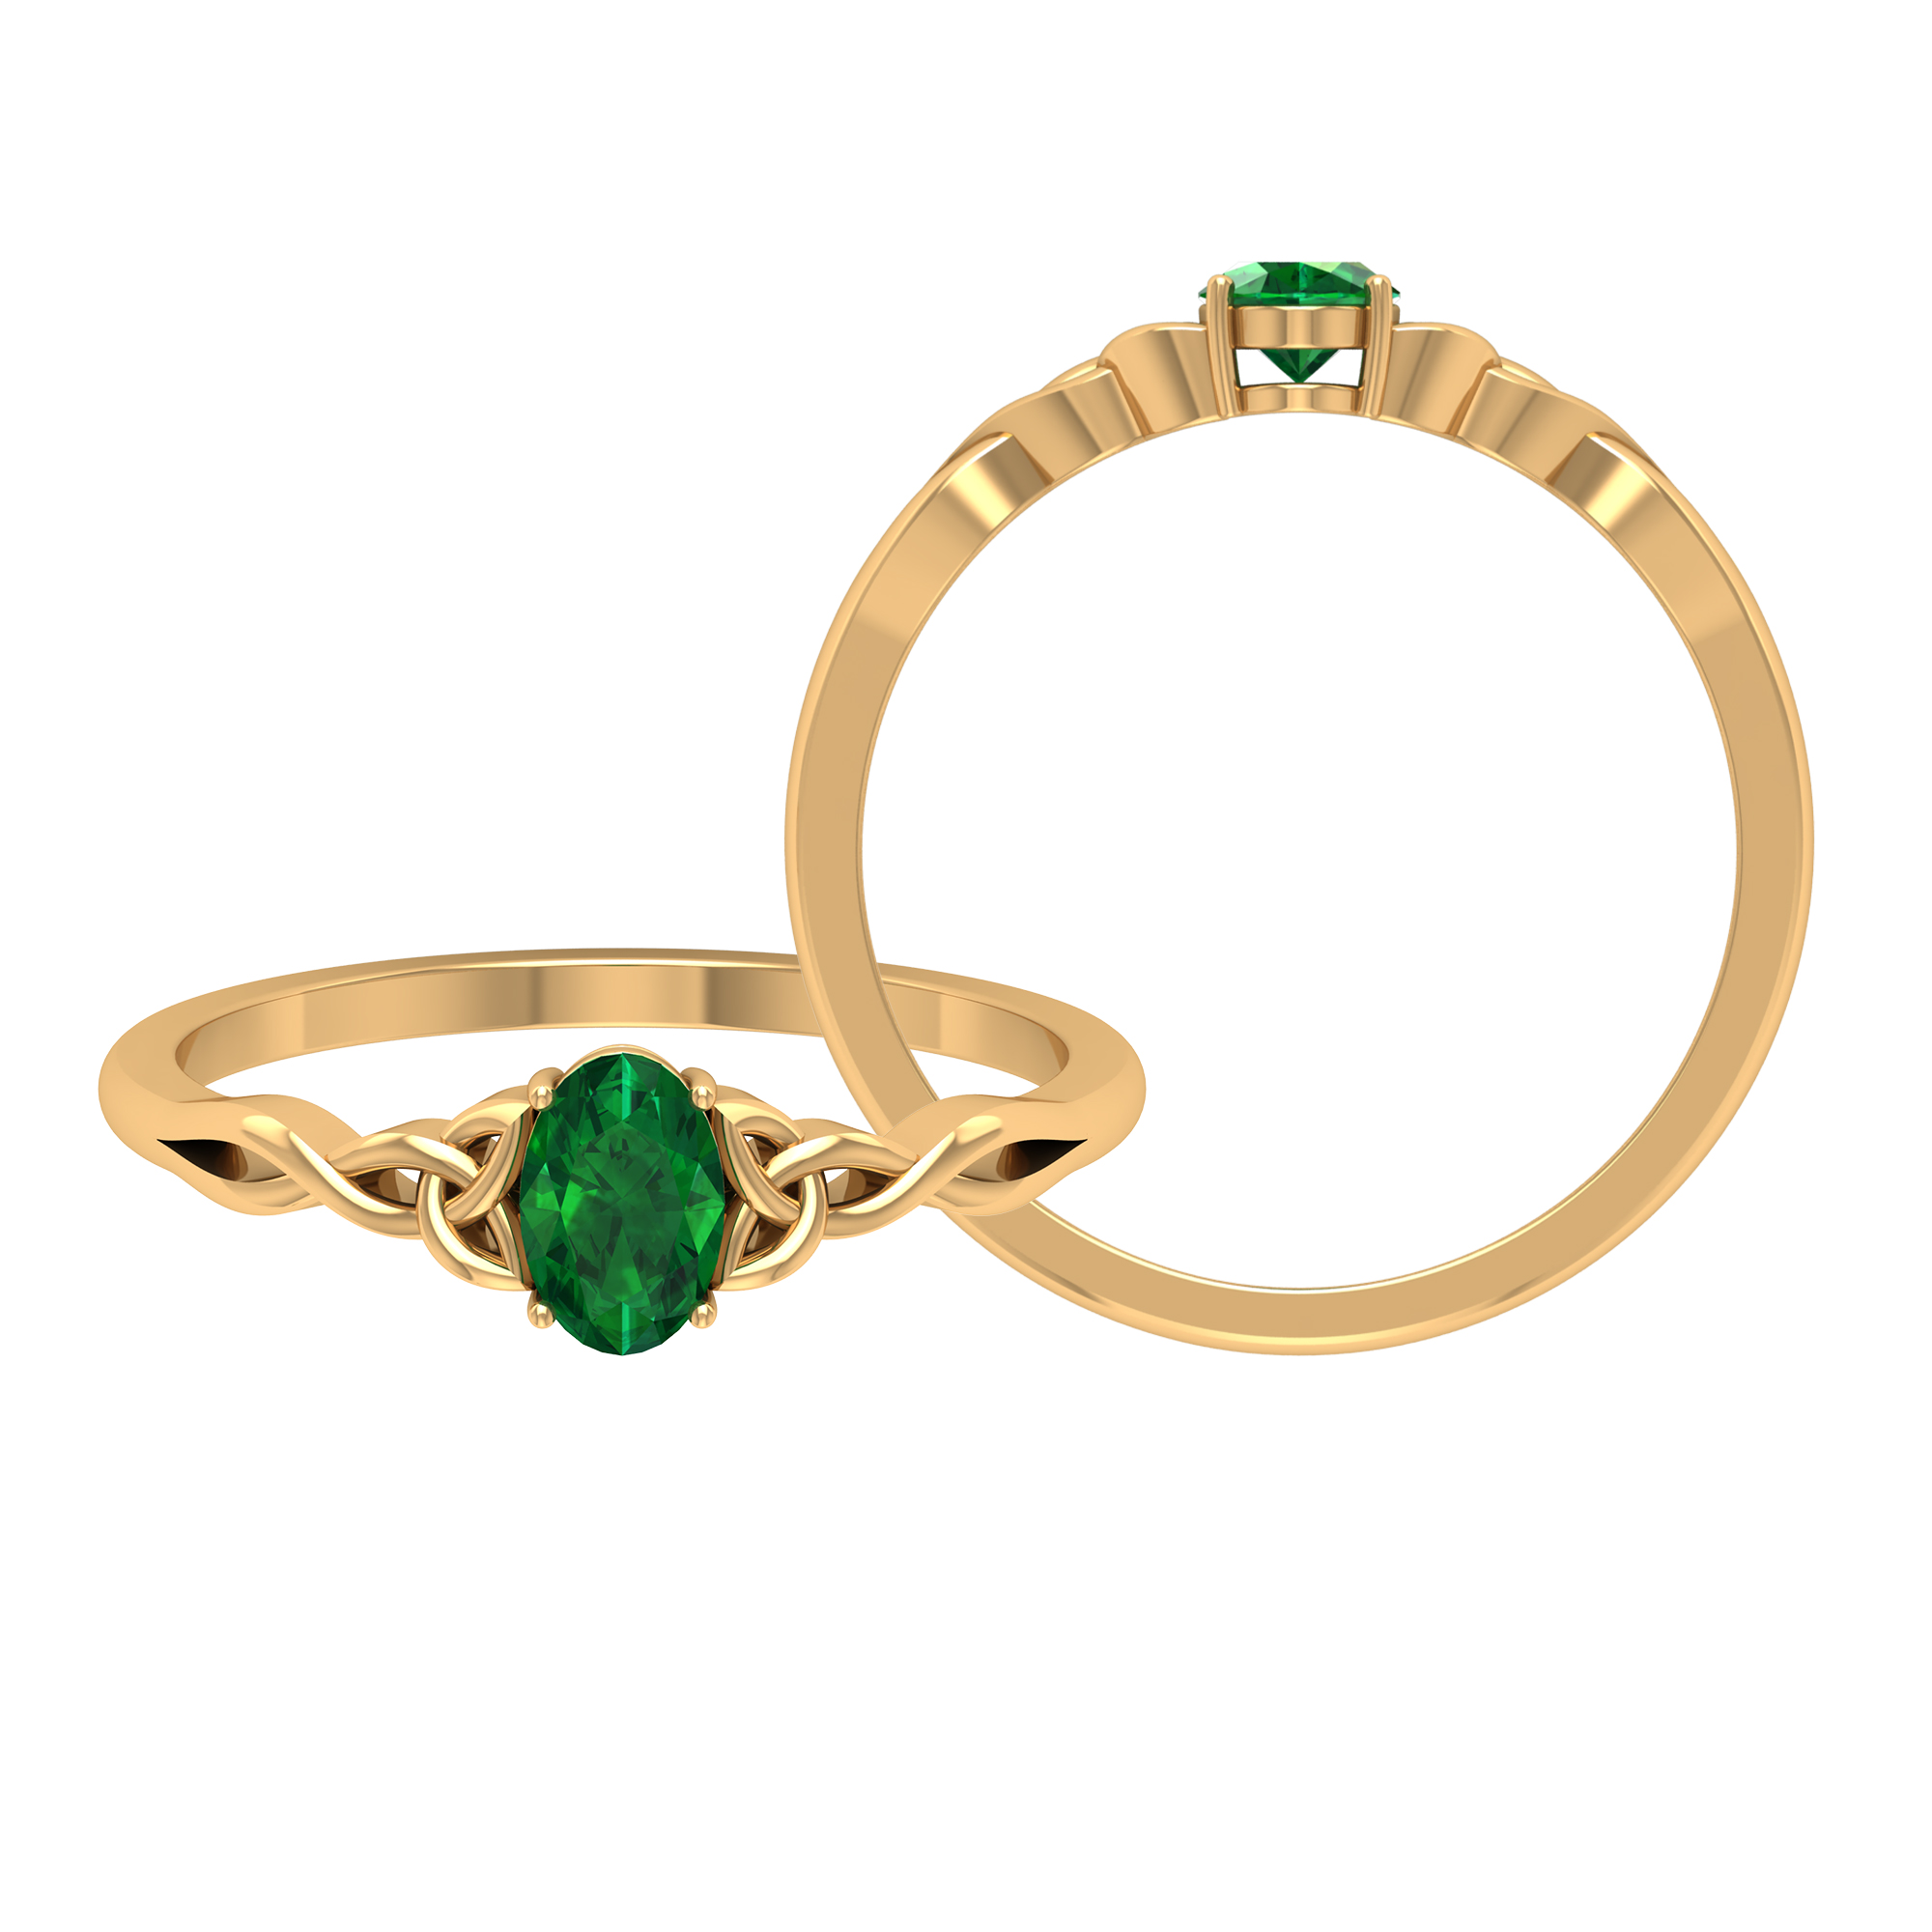 4X6 MM Oval Shape Emerald Solitaire Ring in 4 Prong Setting with Celtic Band